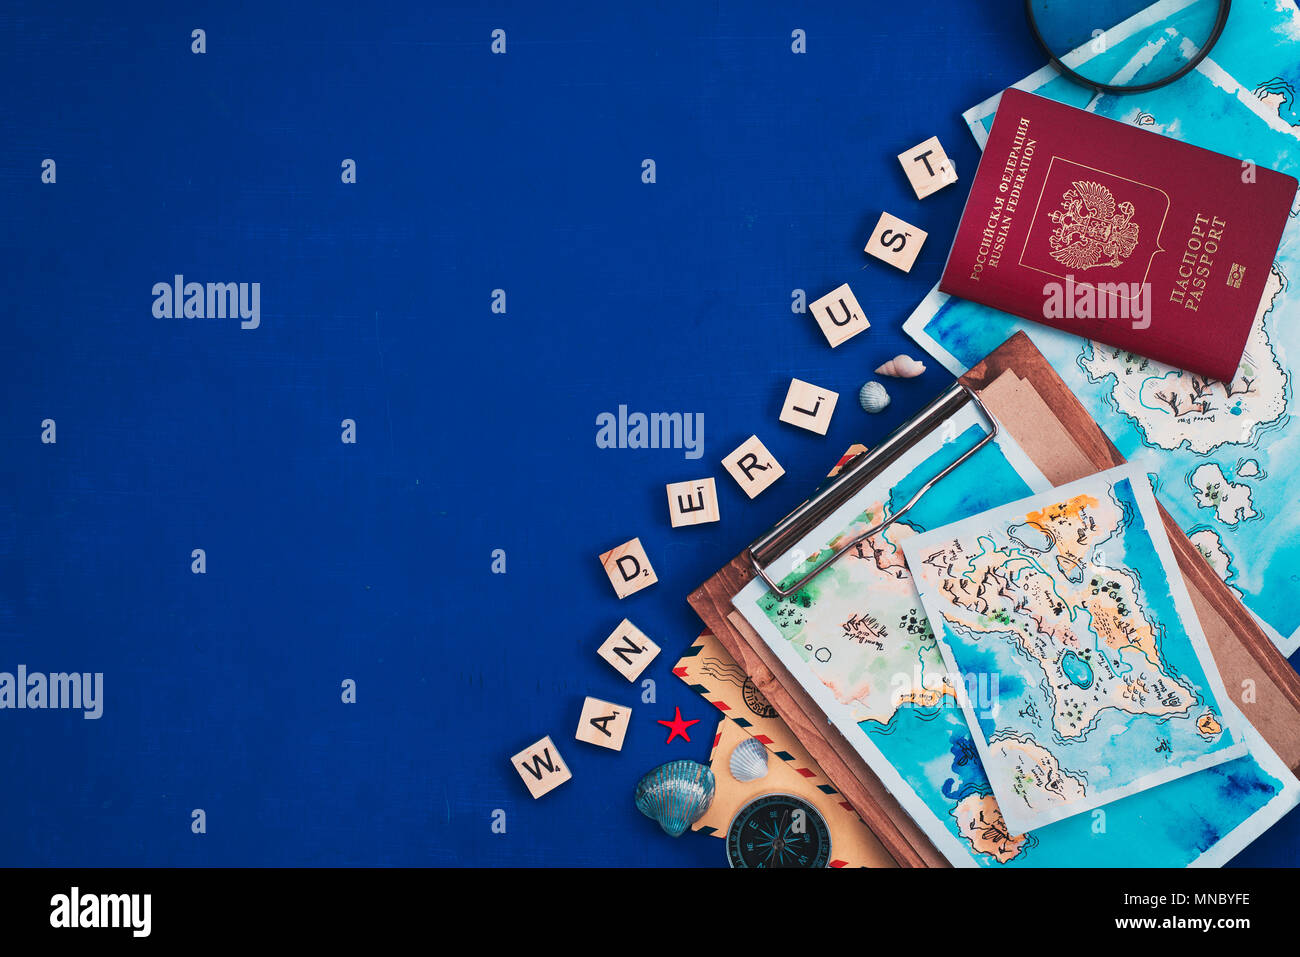 Sea travel and exploration concept. Watercolor maps, passport, compass, post envelopes, and Wanderlust wooden letters flat lay on a navy blue backgrou Stock Photo